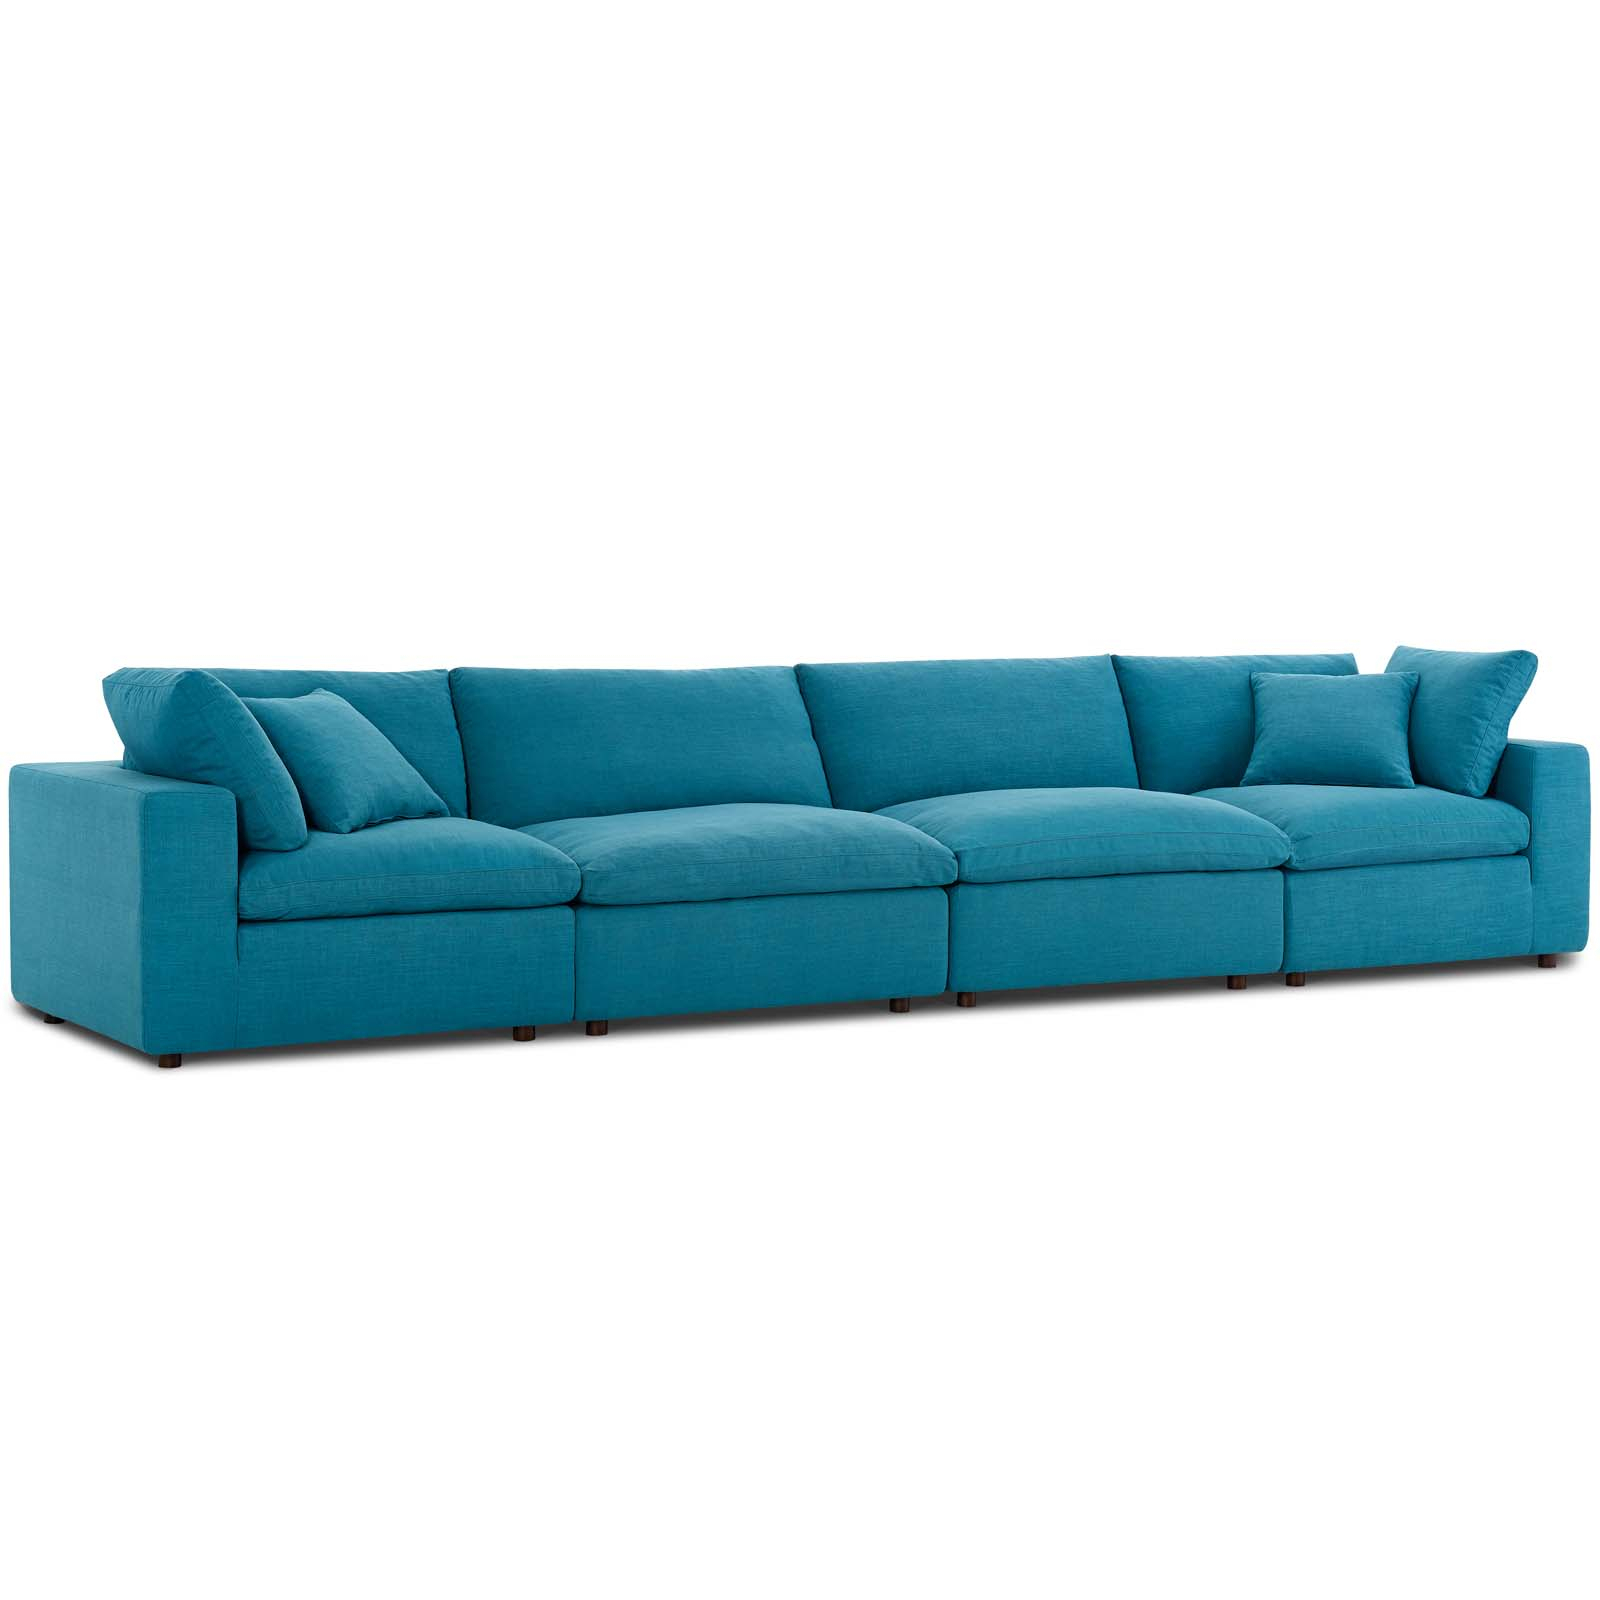 Commix Down Filled Overstuffed 4 Piece Sectional Sofa Set Teal Within Down Filled Sectional Sofas (View 10 of 15)